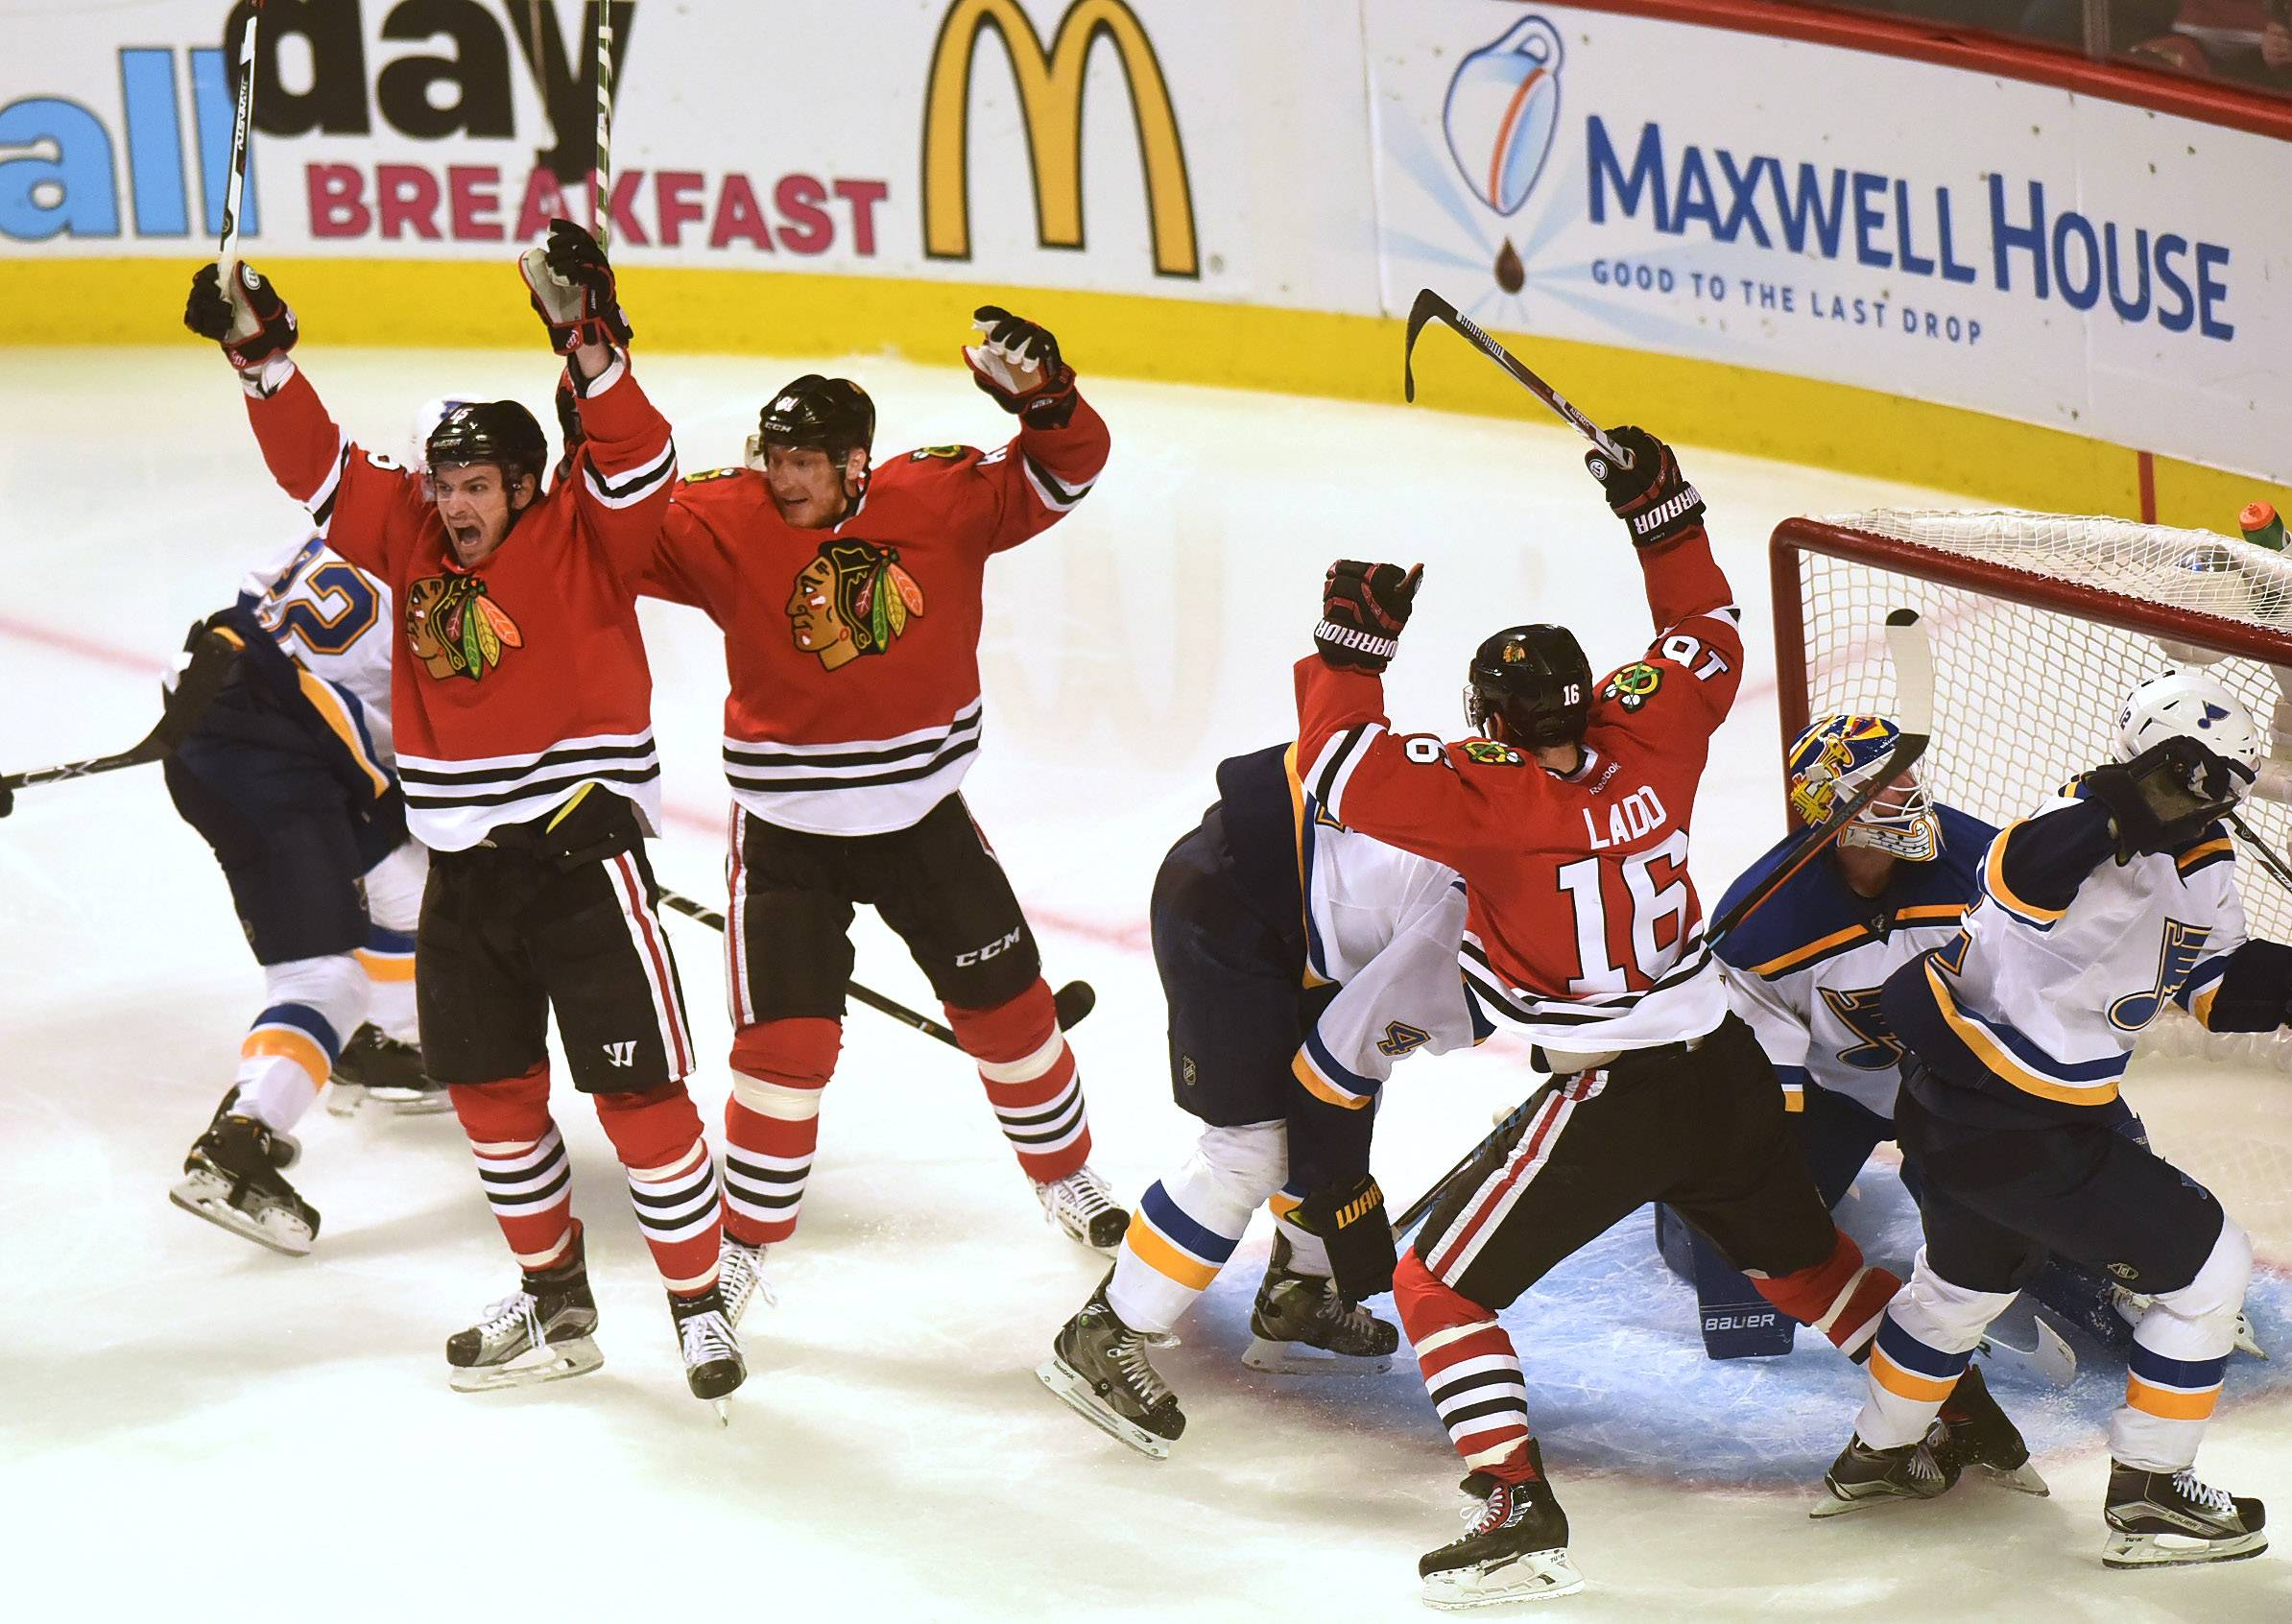 Chicago Blackhawks center Artem Anisimov (15), left, Chicago Blackhawks right wing Marian Hossa (81), center, and Chicago Blackhawks left wing Andrew Ladd (16) celebrate Anismov's 2nd period goal between the Chicago Blackhawks and the St. Louis Blues.